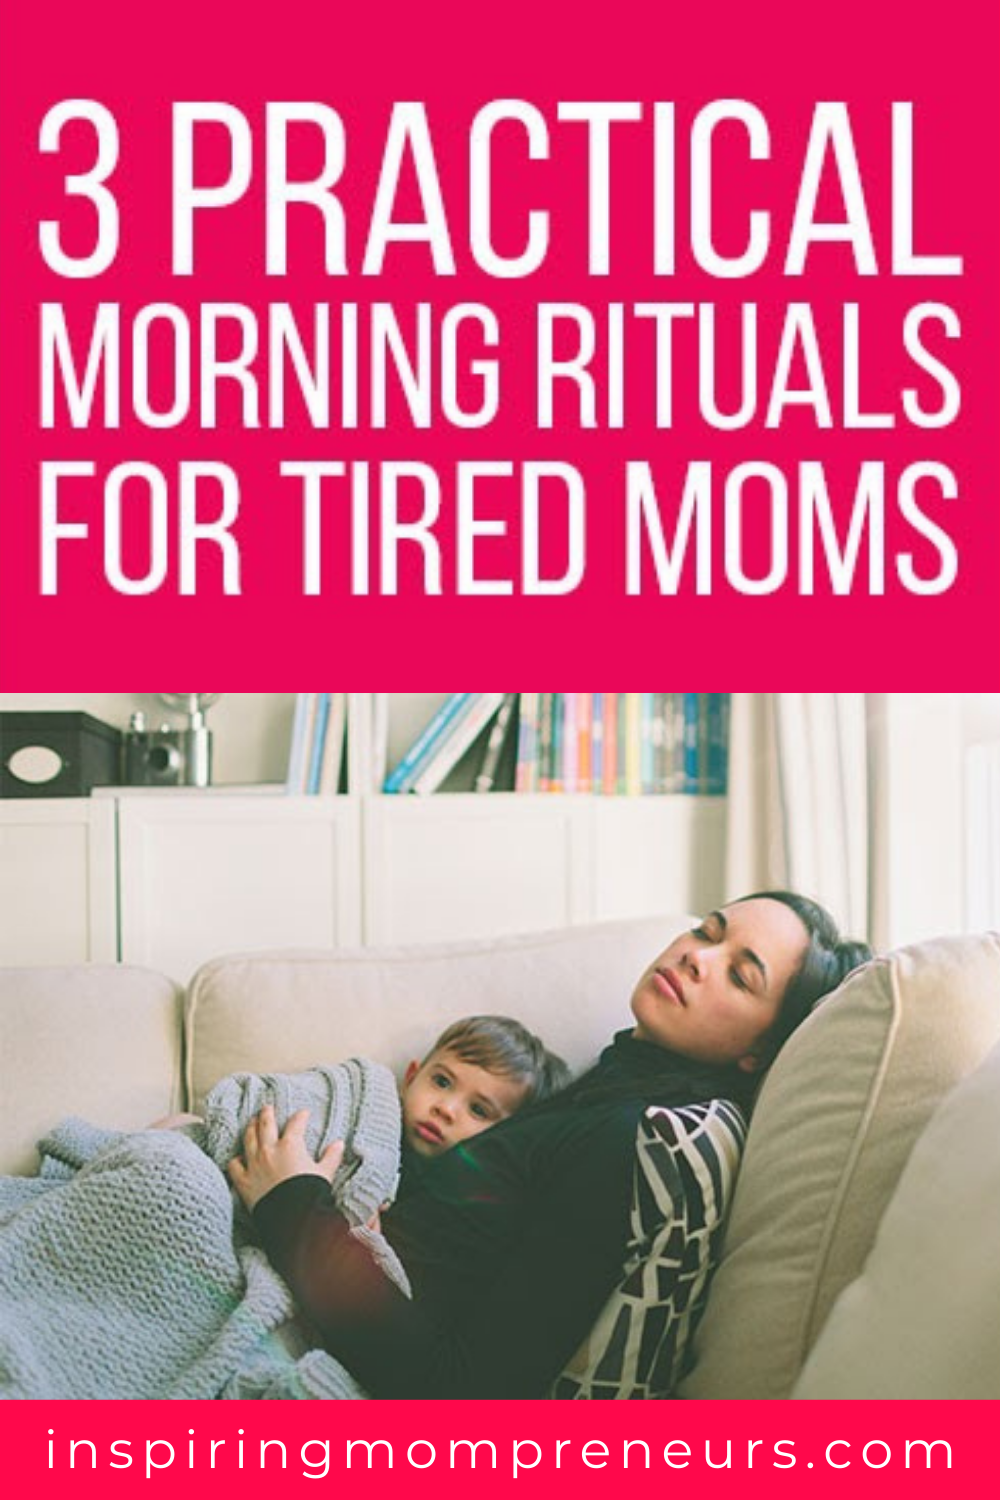 Here are 3 practical morning rituals to take you from tired mom to super mom in just 30 minutes, care of The 4am Club.  #practical #morningrituals #tiredmoms #worklifebalance #productivity